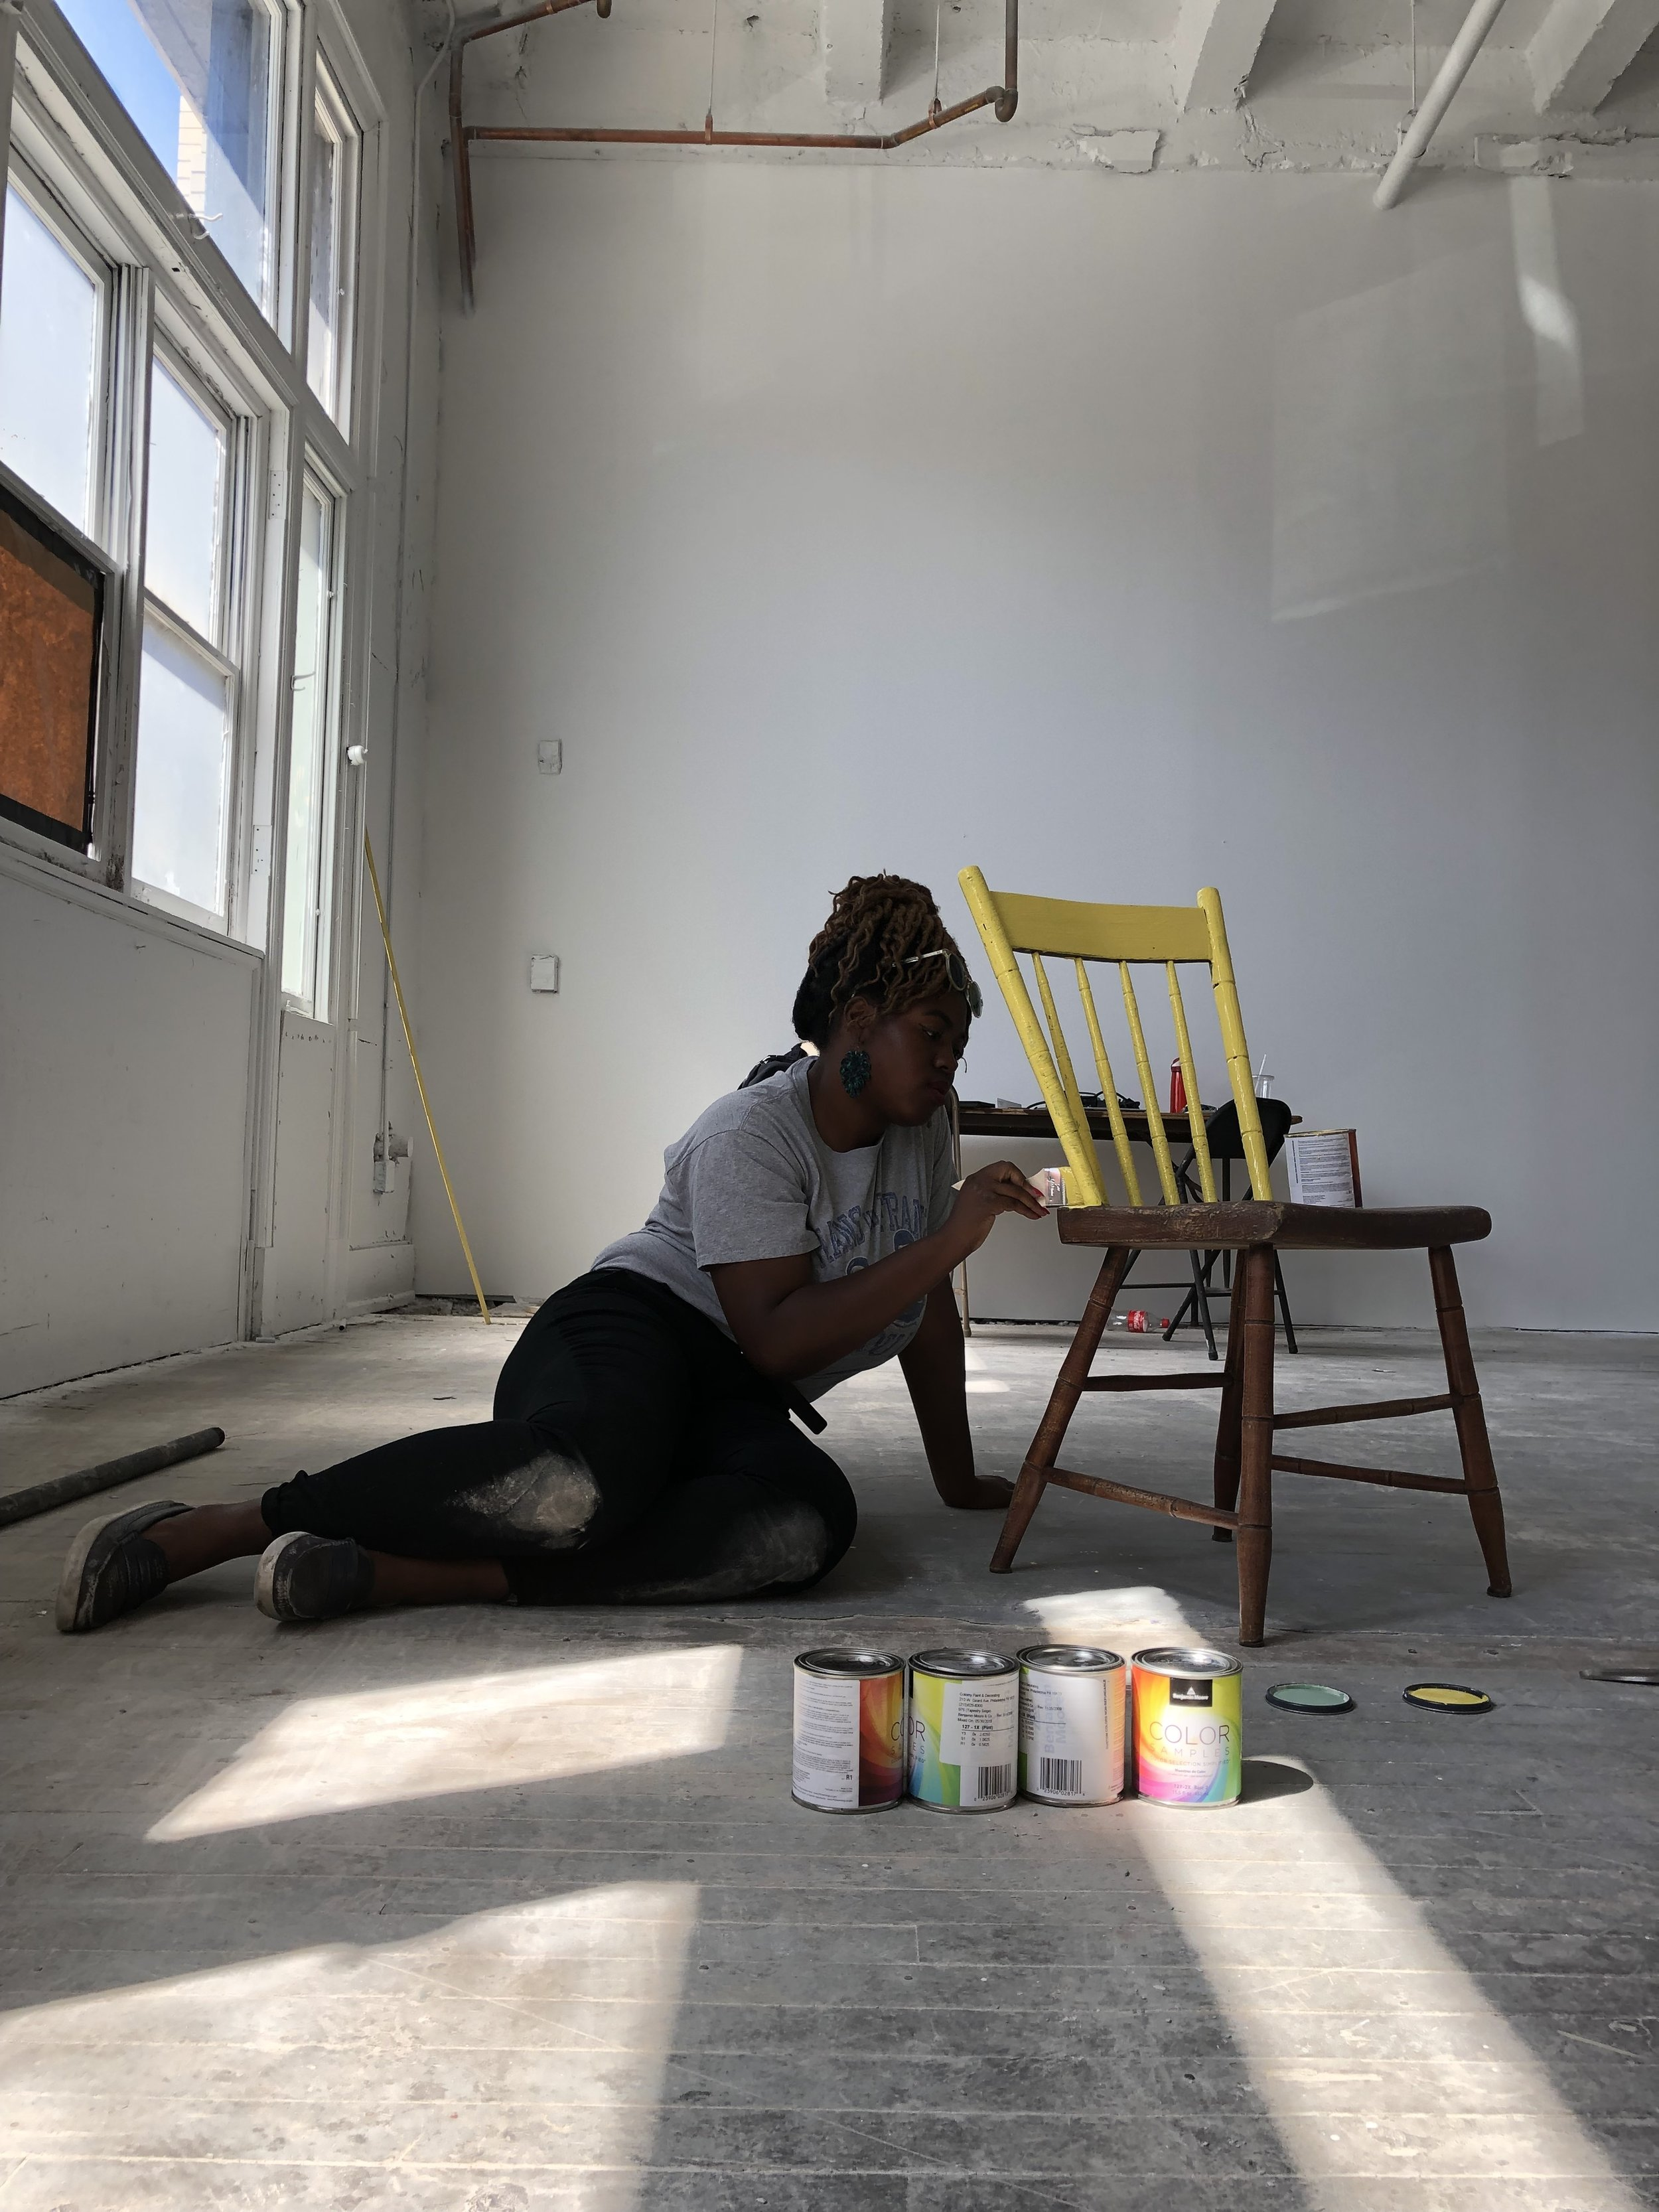 We'll be using thrifted chairs that we paint with some Triple Bottom colors. Here's Sola doing a trial run!